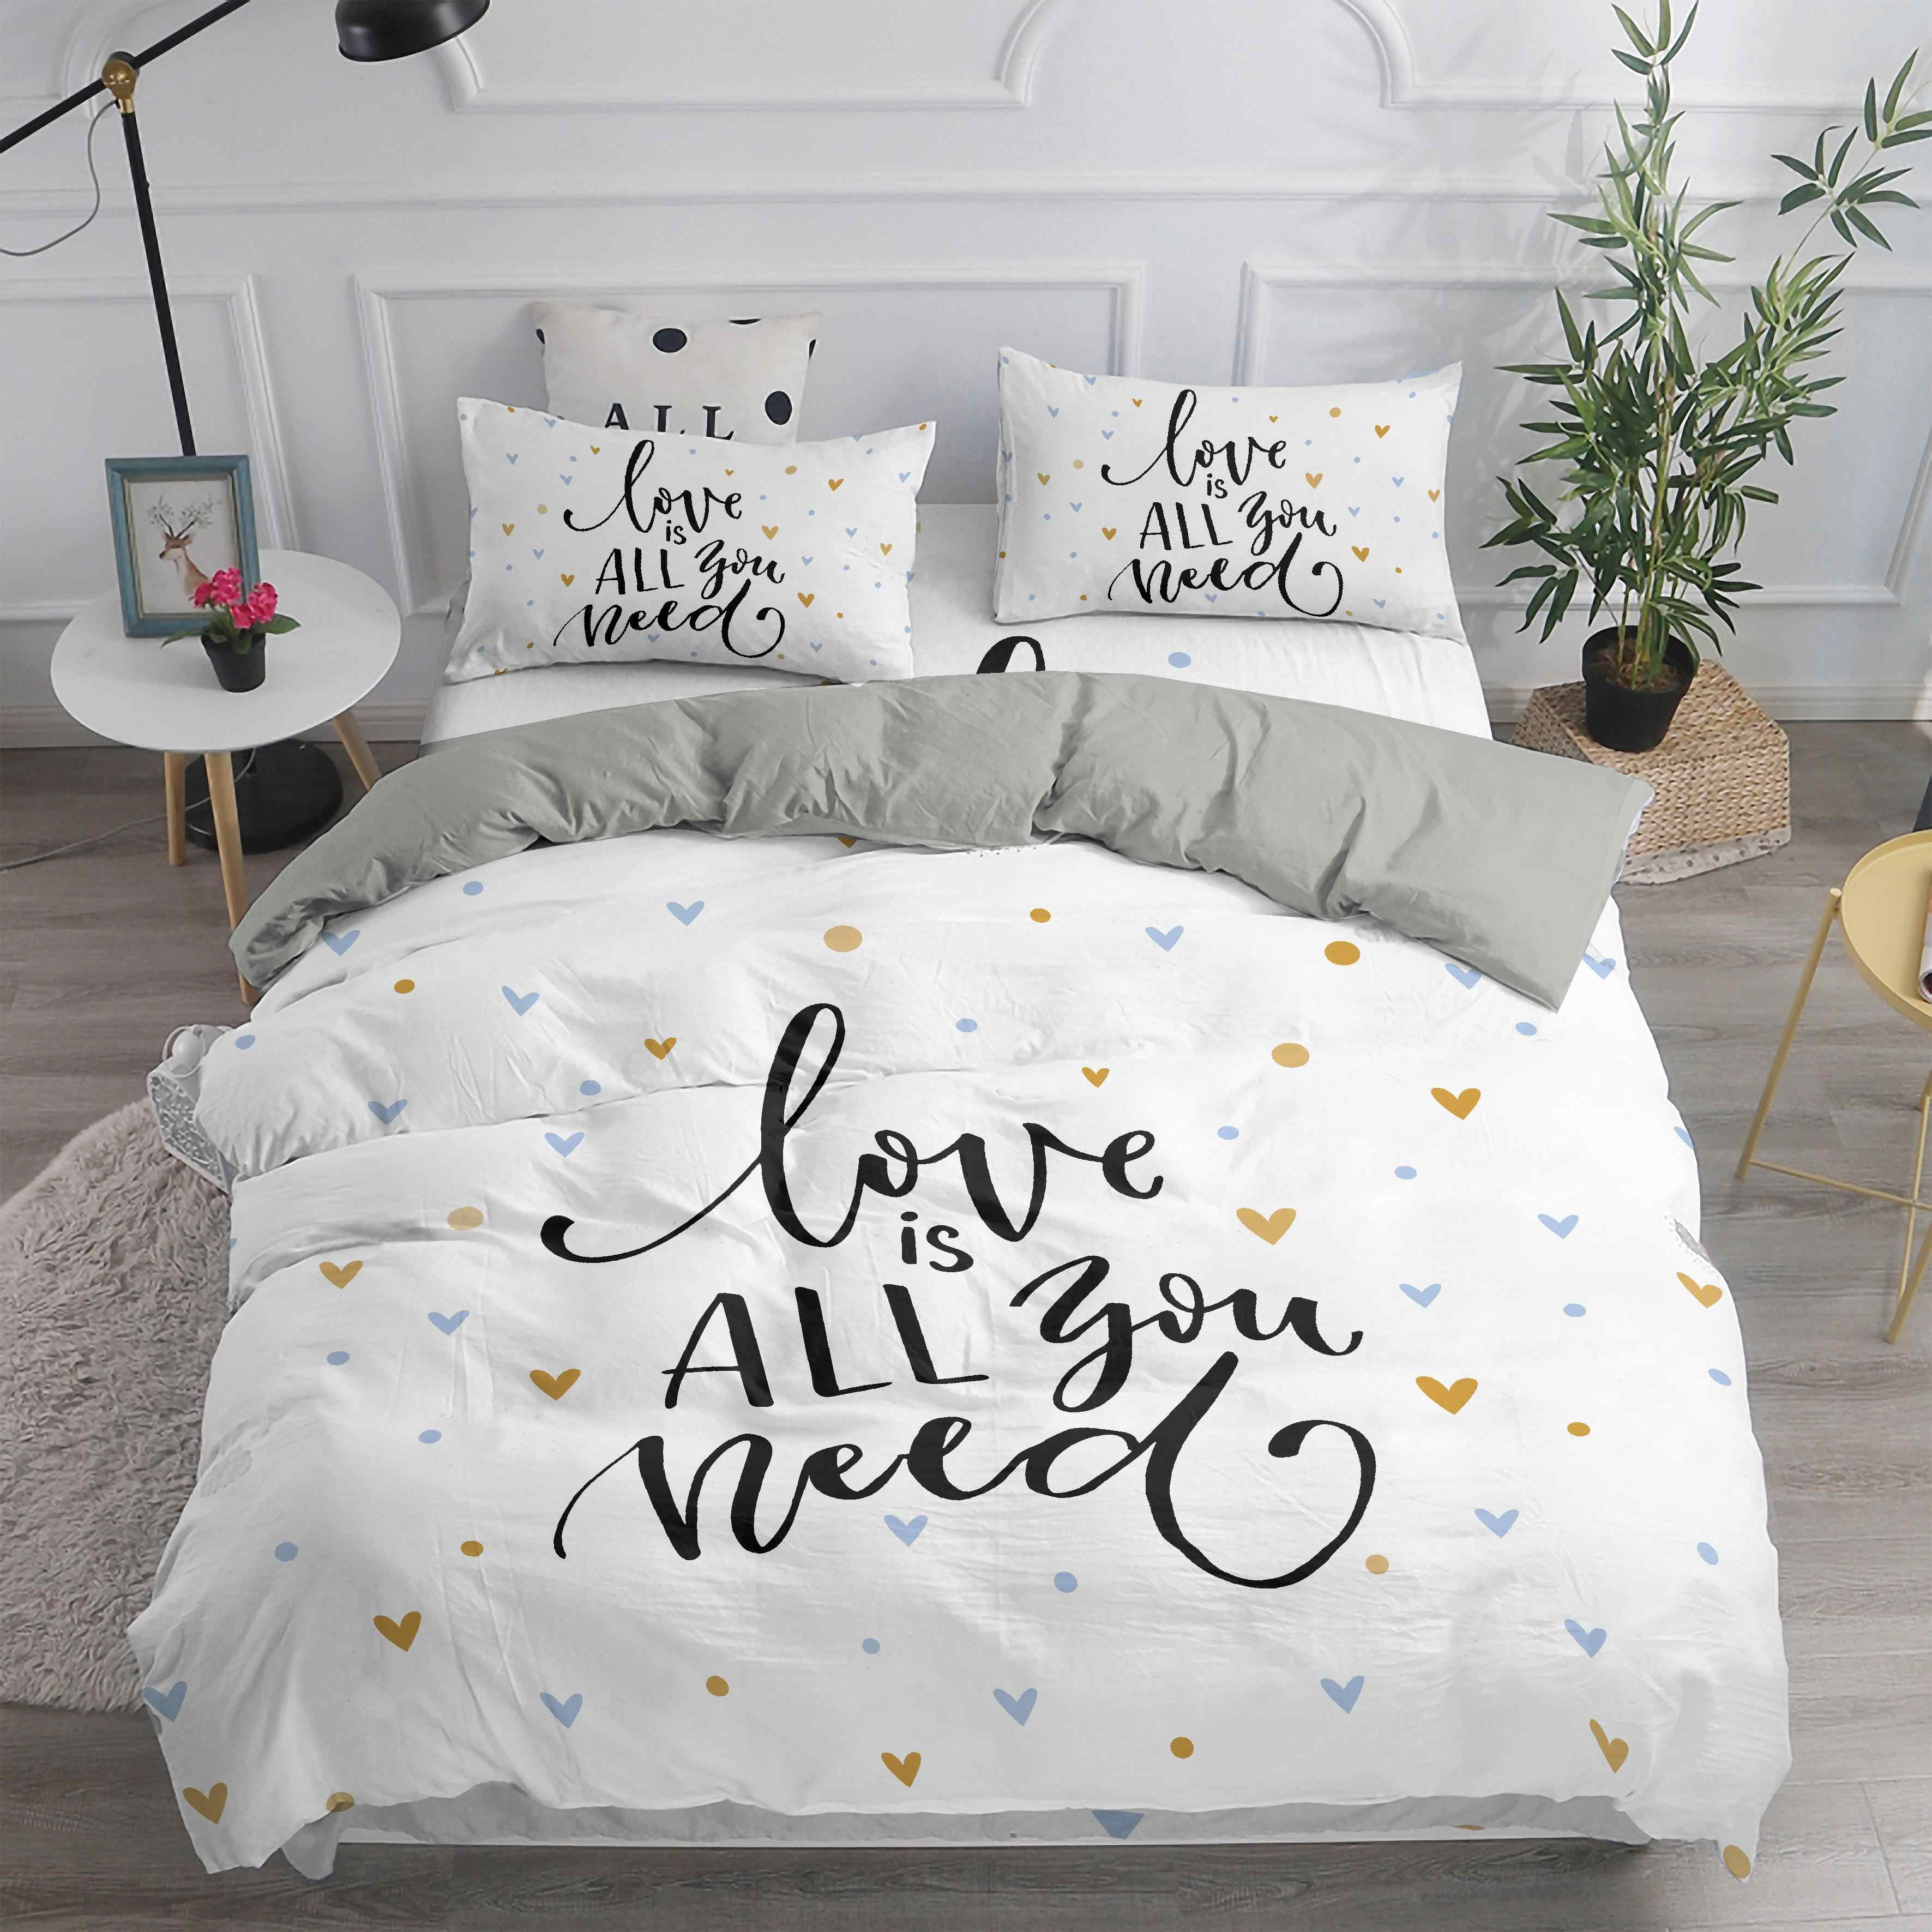 ZEIMON 3D Heart Printed Simple Bedding Sets English Letter Printing Kid Duvet Cover Pillowcase Bed Set Girl Adult Bedclothes